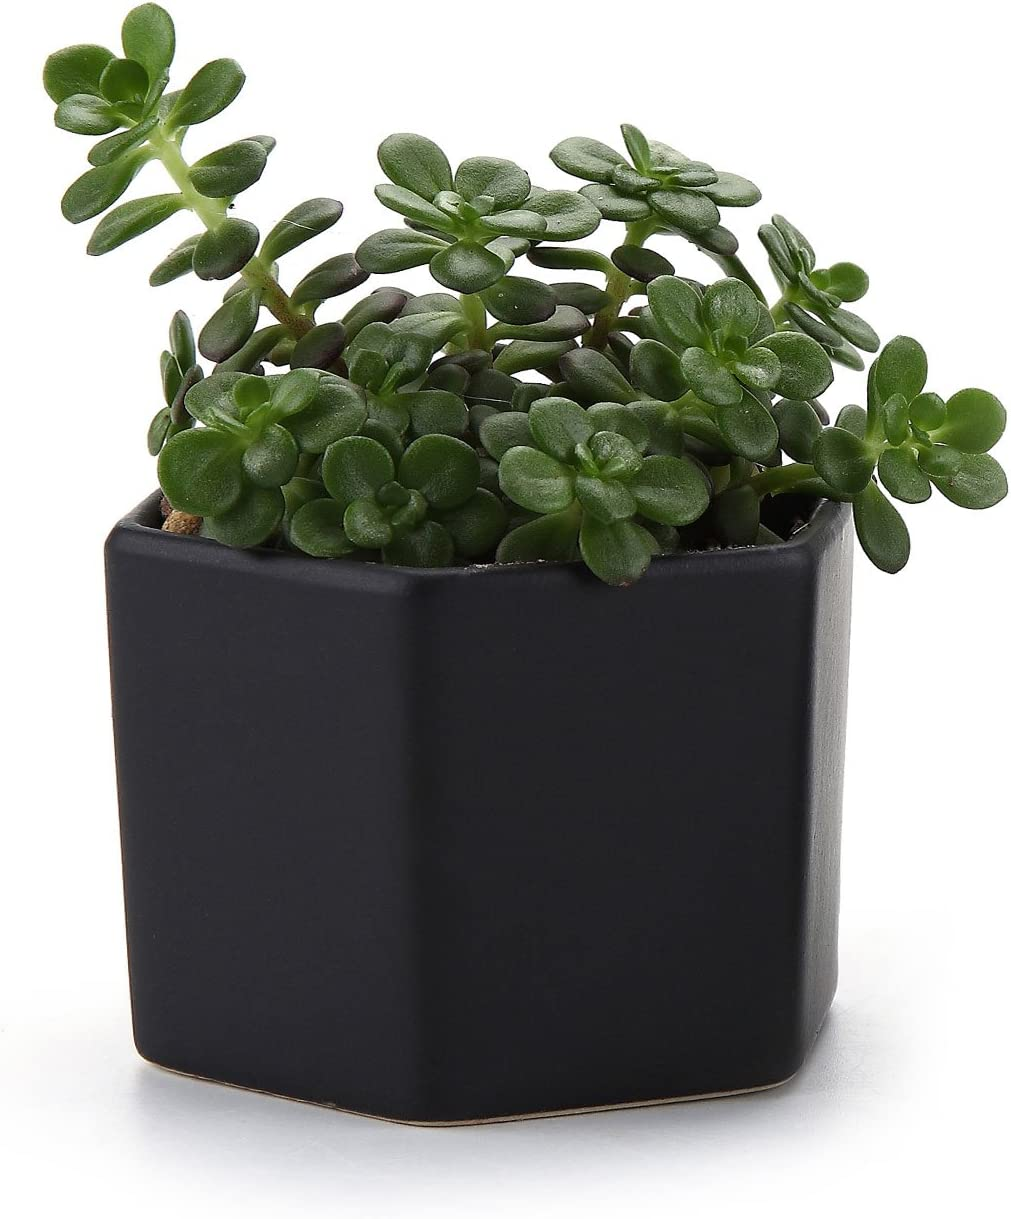 T4U 2.75 Inch Ceramic Six Sizes Semi Luster Surface Succulent Plant Pot Cactus Plant Pot Flower Pot Container Planter Matte Black